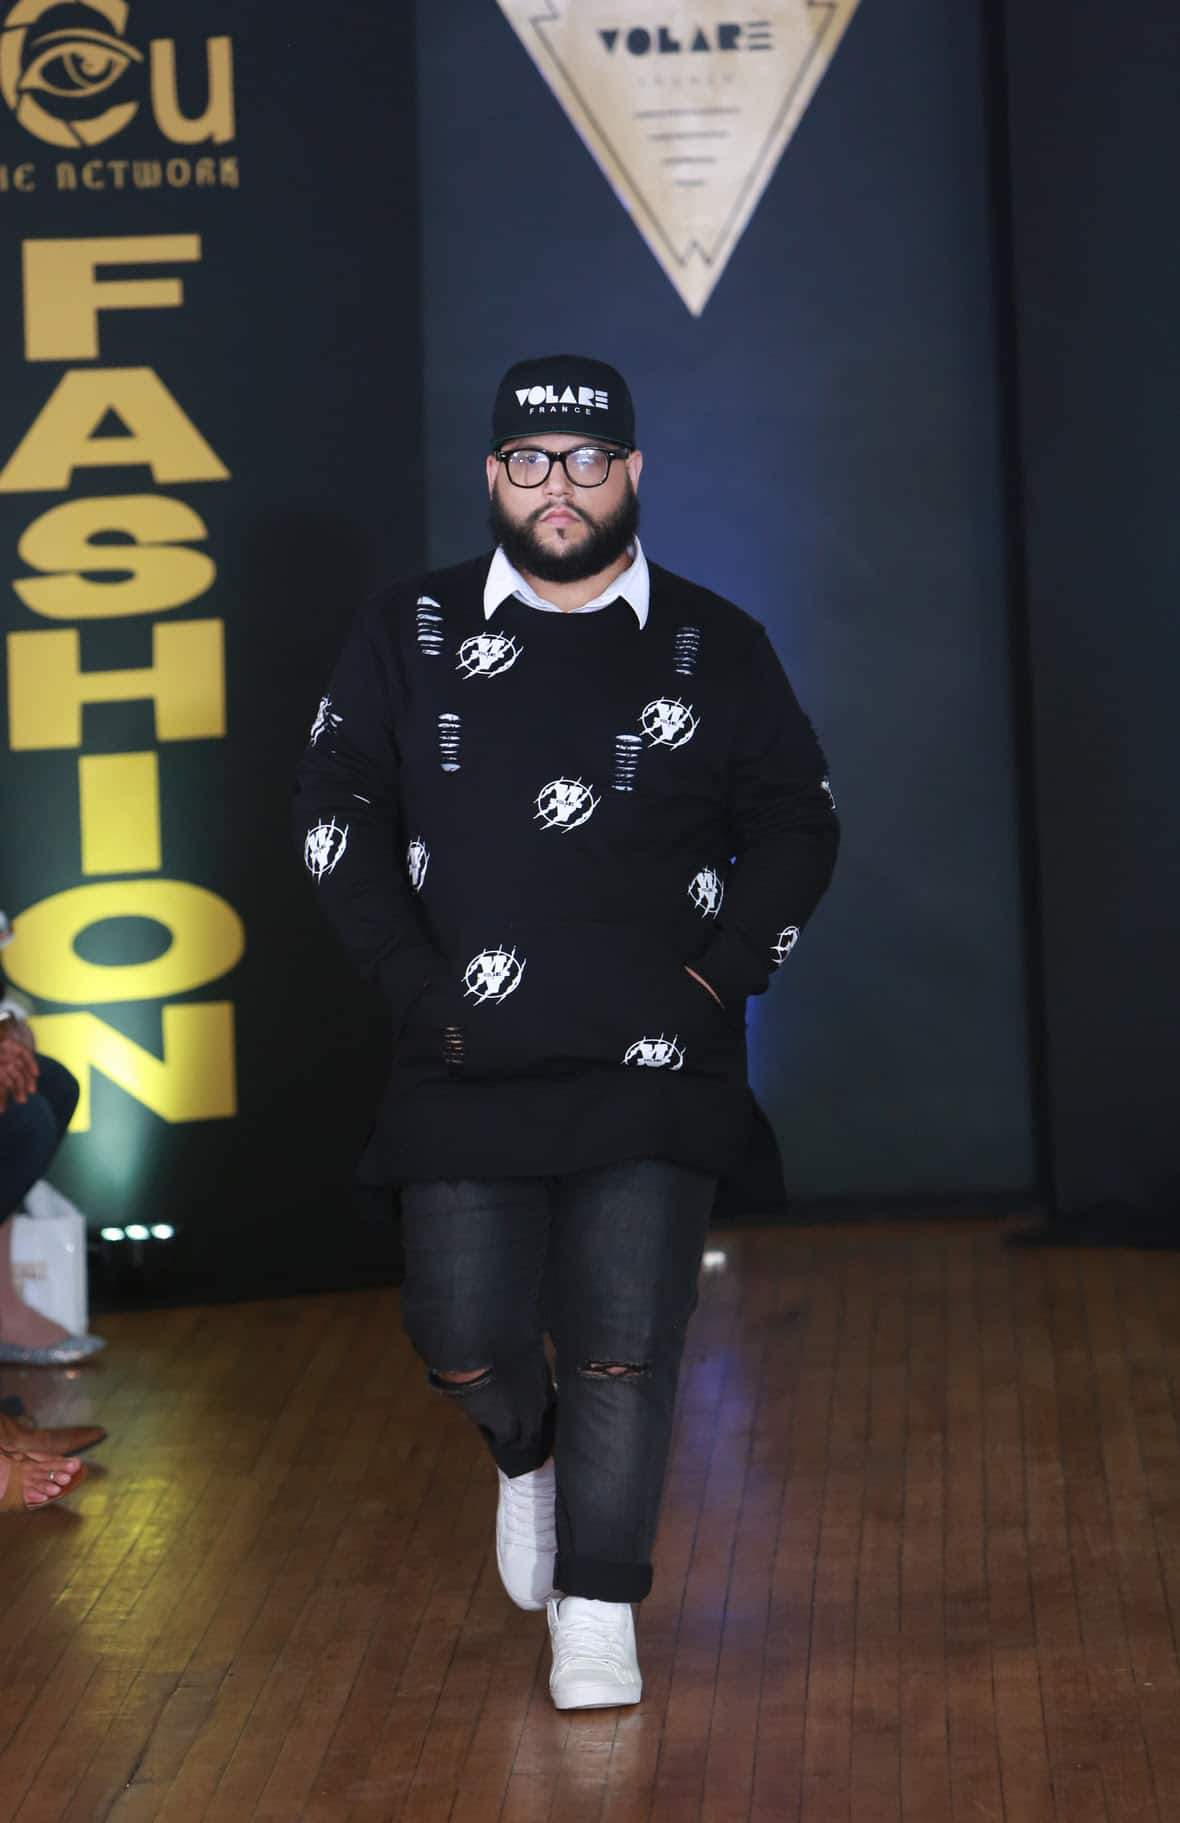 Big & Tall Menswear Collection- Volare at NYFW